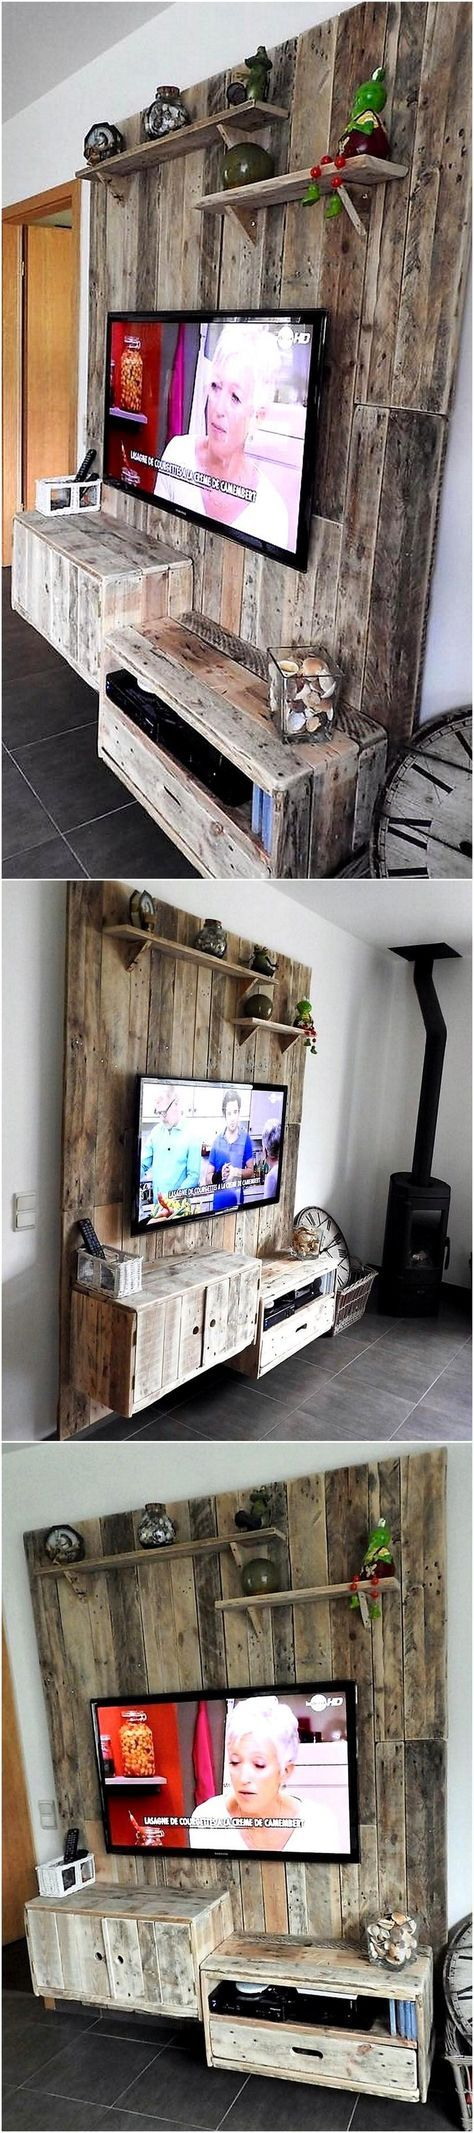 pallet tv stand and wall art....avoid drilling in rental unit walls??!